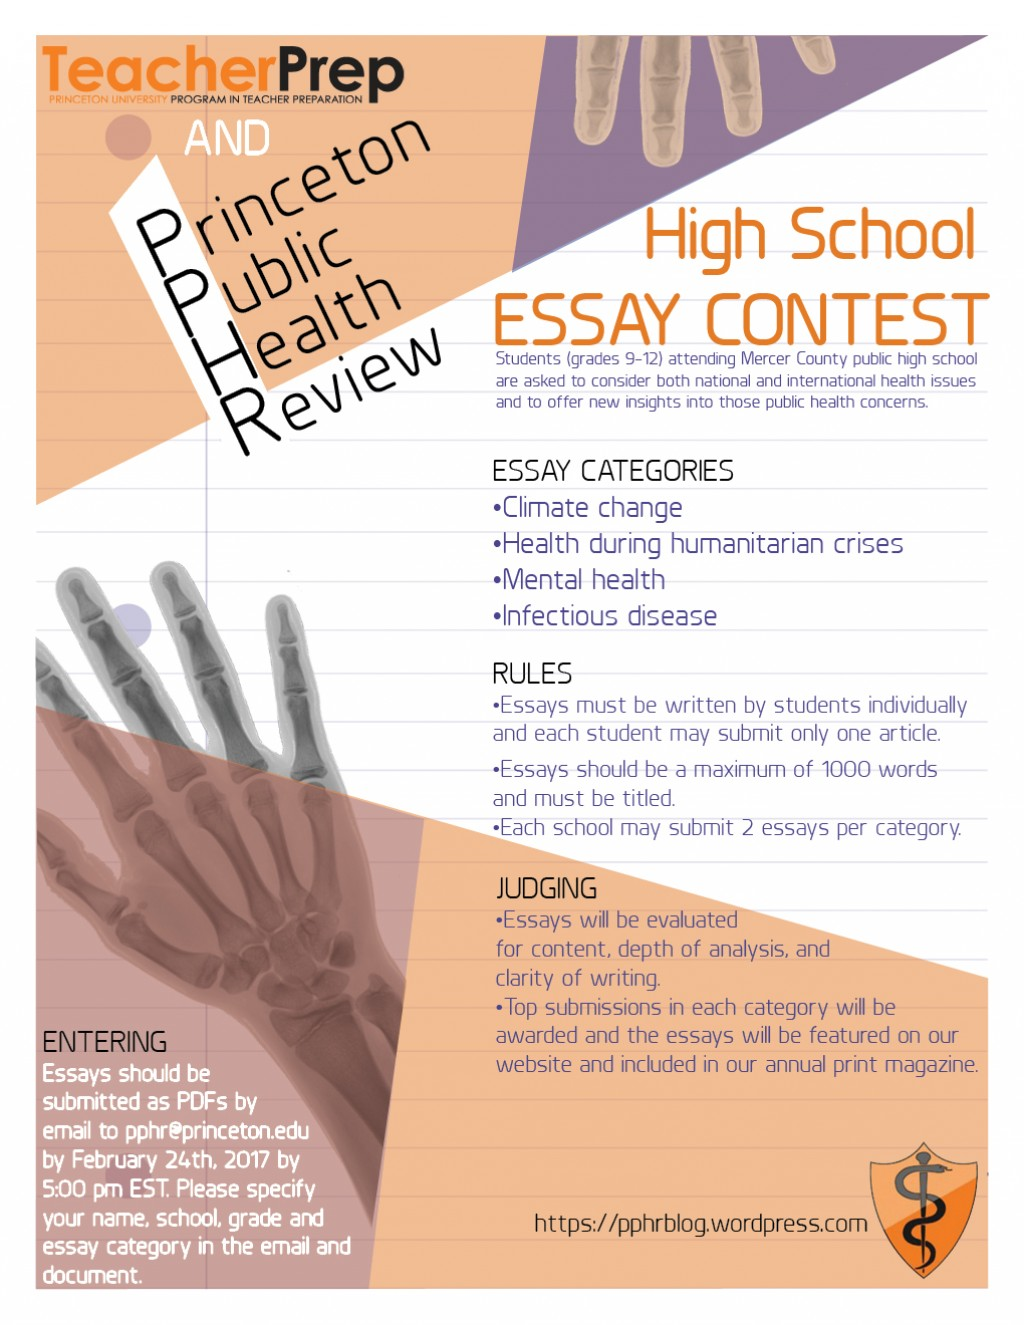 008 Essay Contests For High School Students Example Surprising Money Canada Science Competitions Large